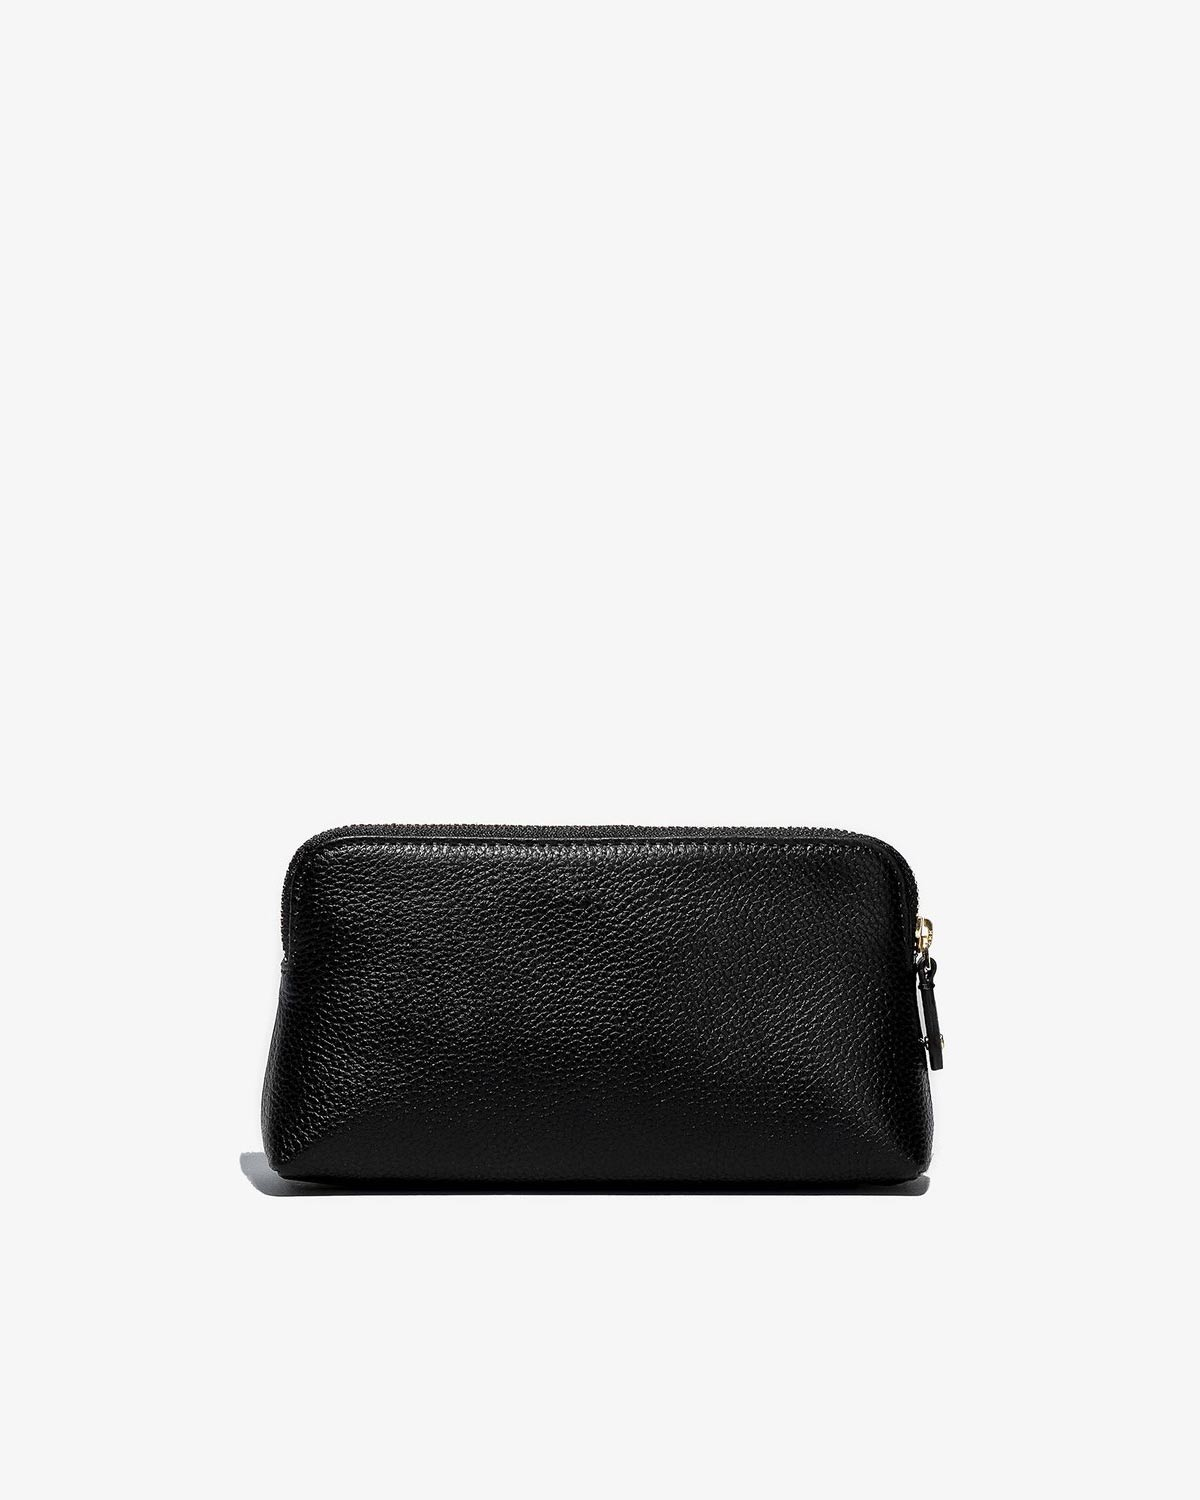 Cosmetic Traveler - Black Leather with Gold